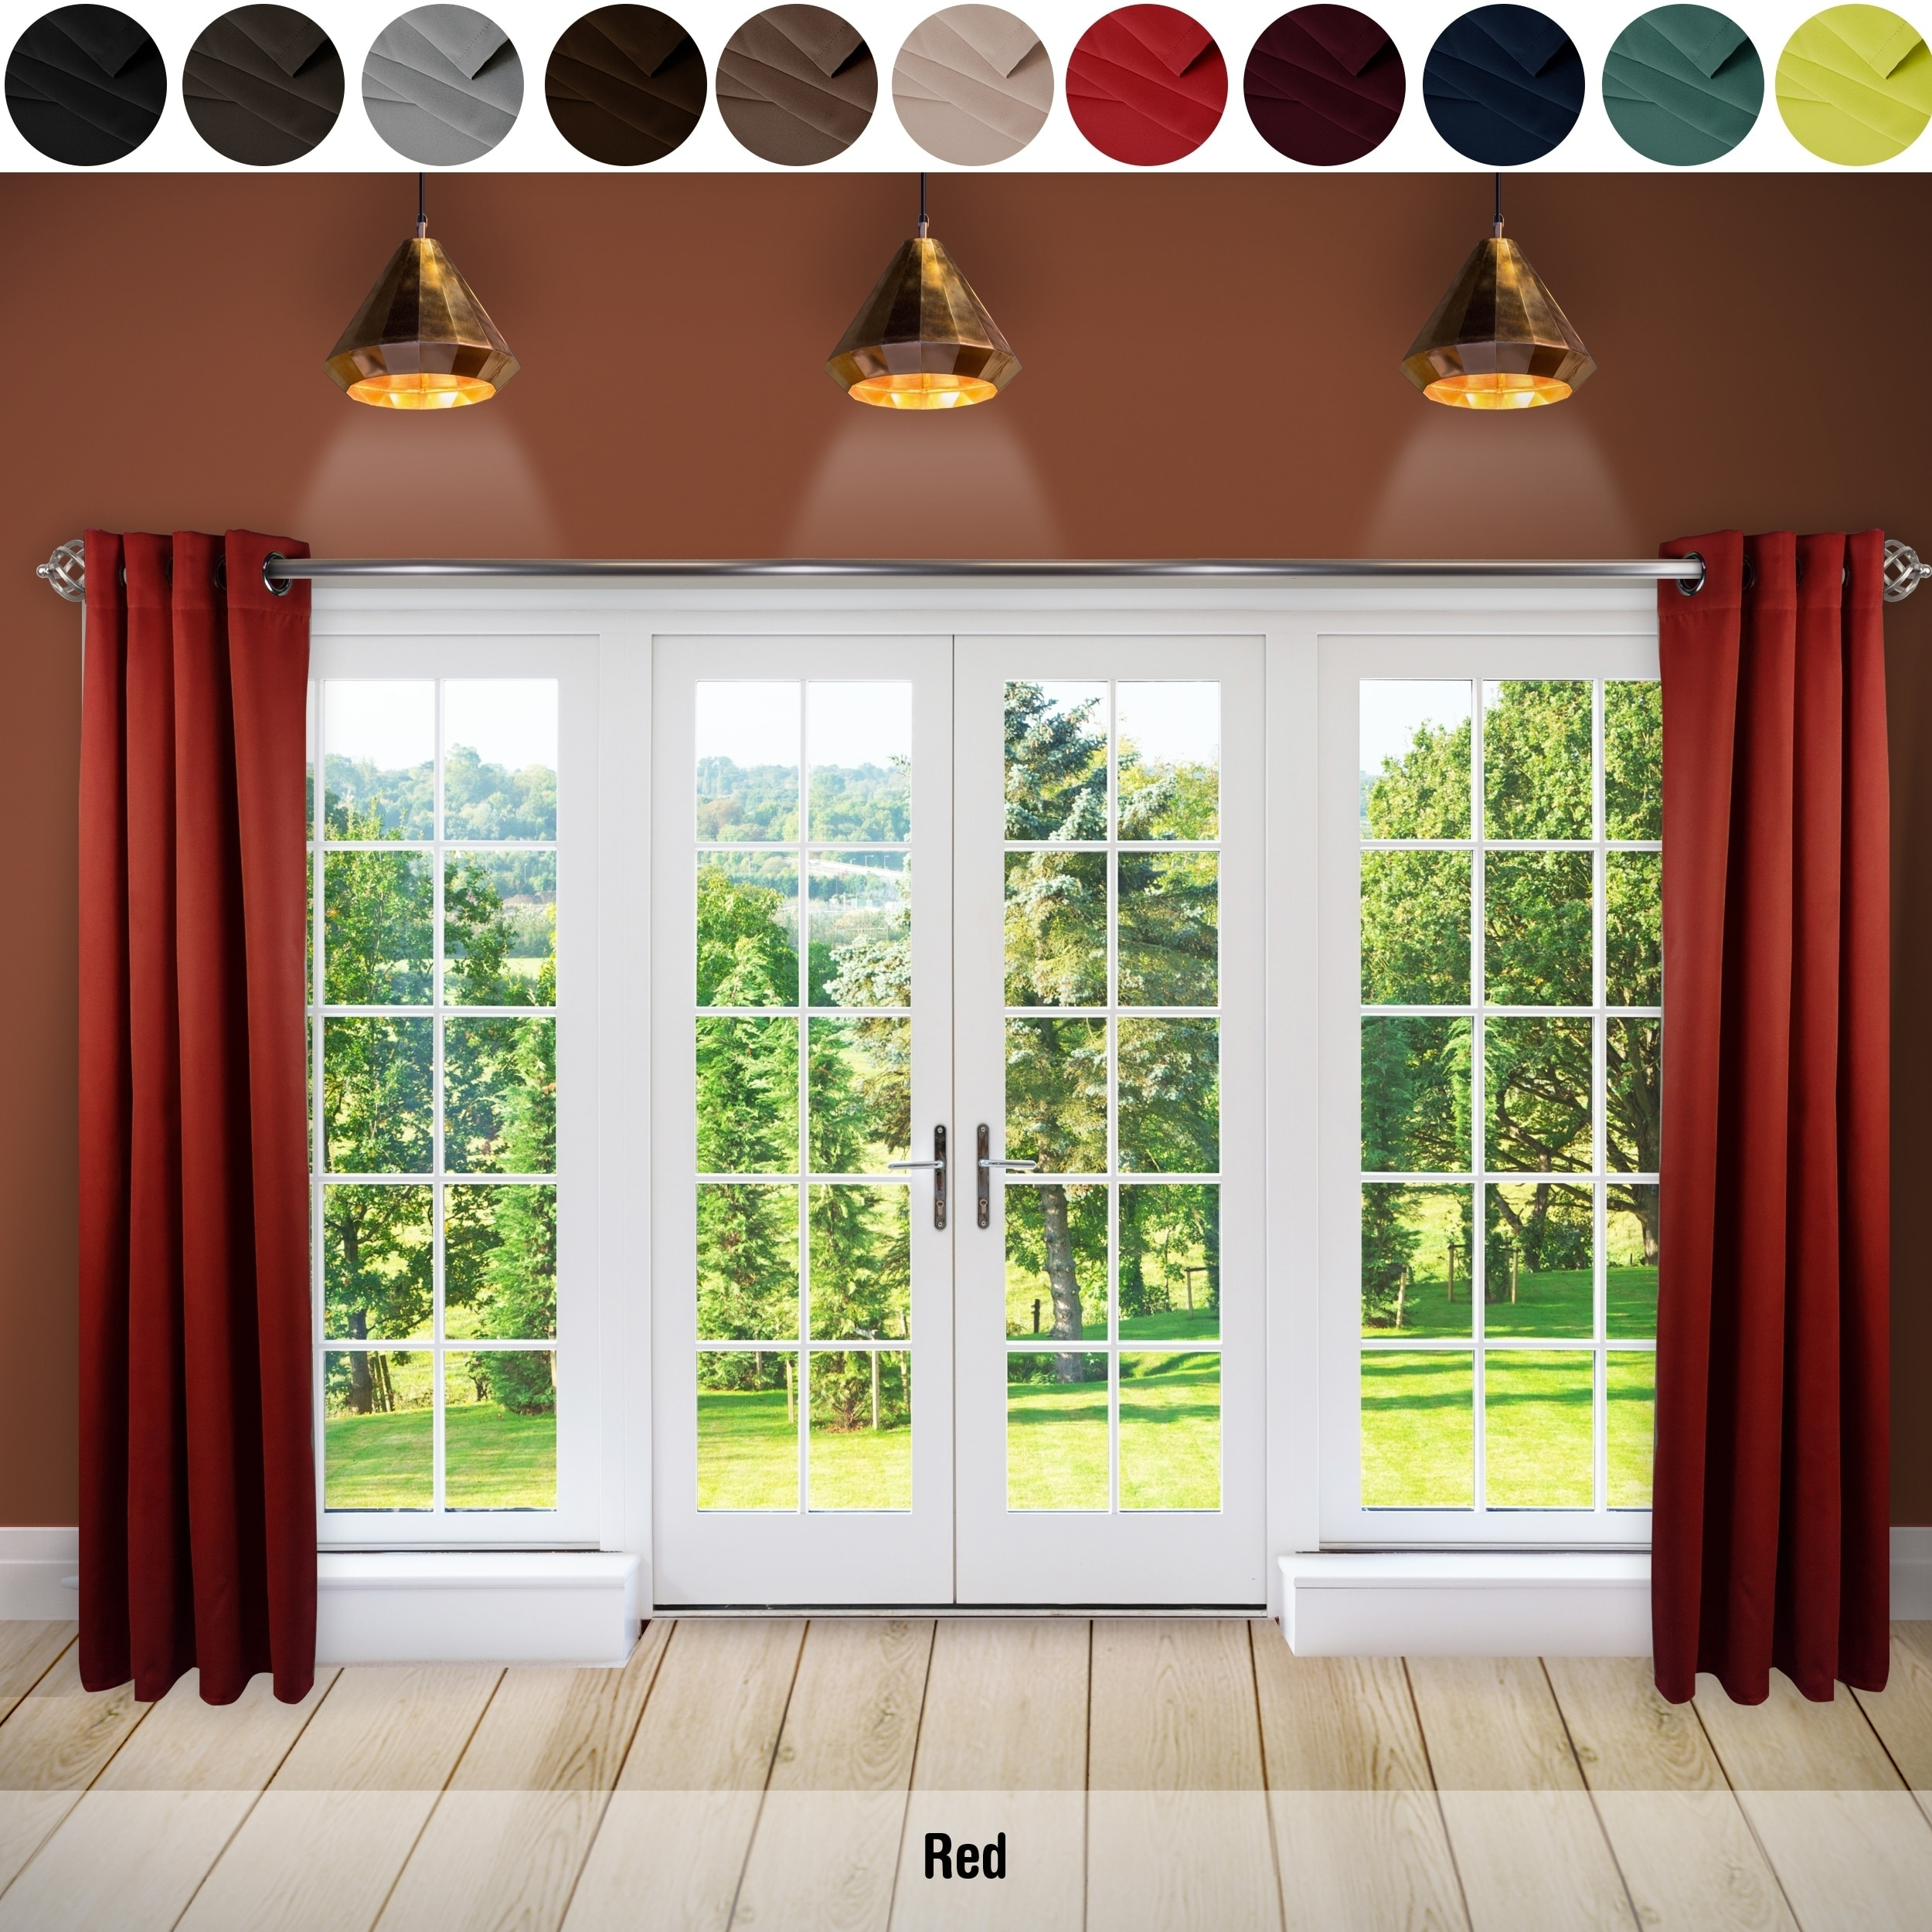 steps a hang wide swag curtain with curtains extra wikihow blackout pictures how to step